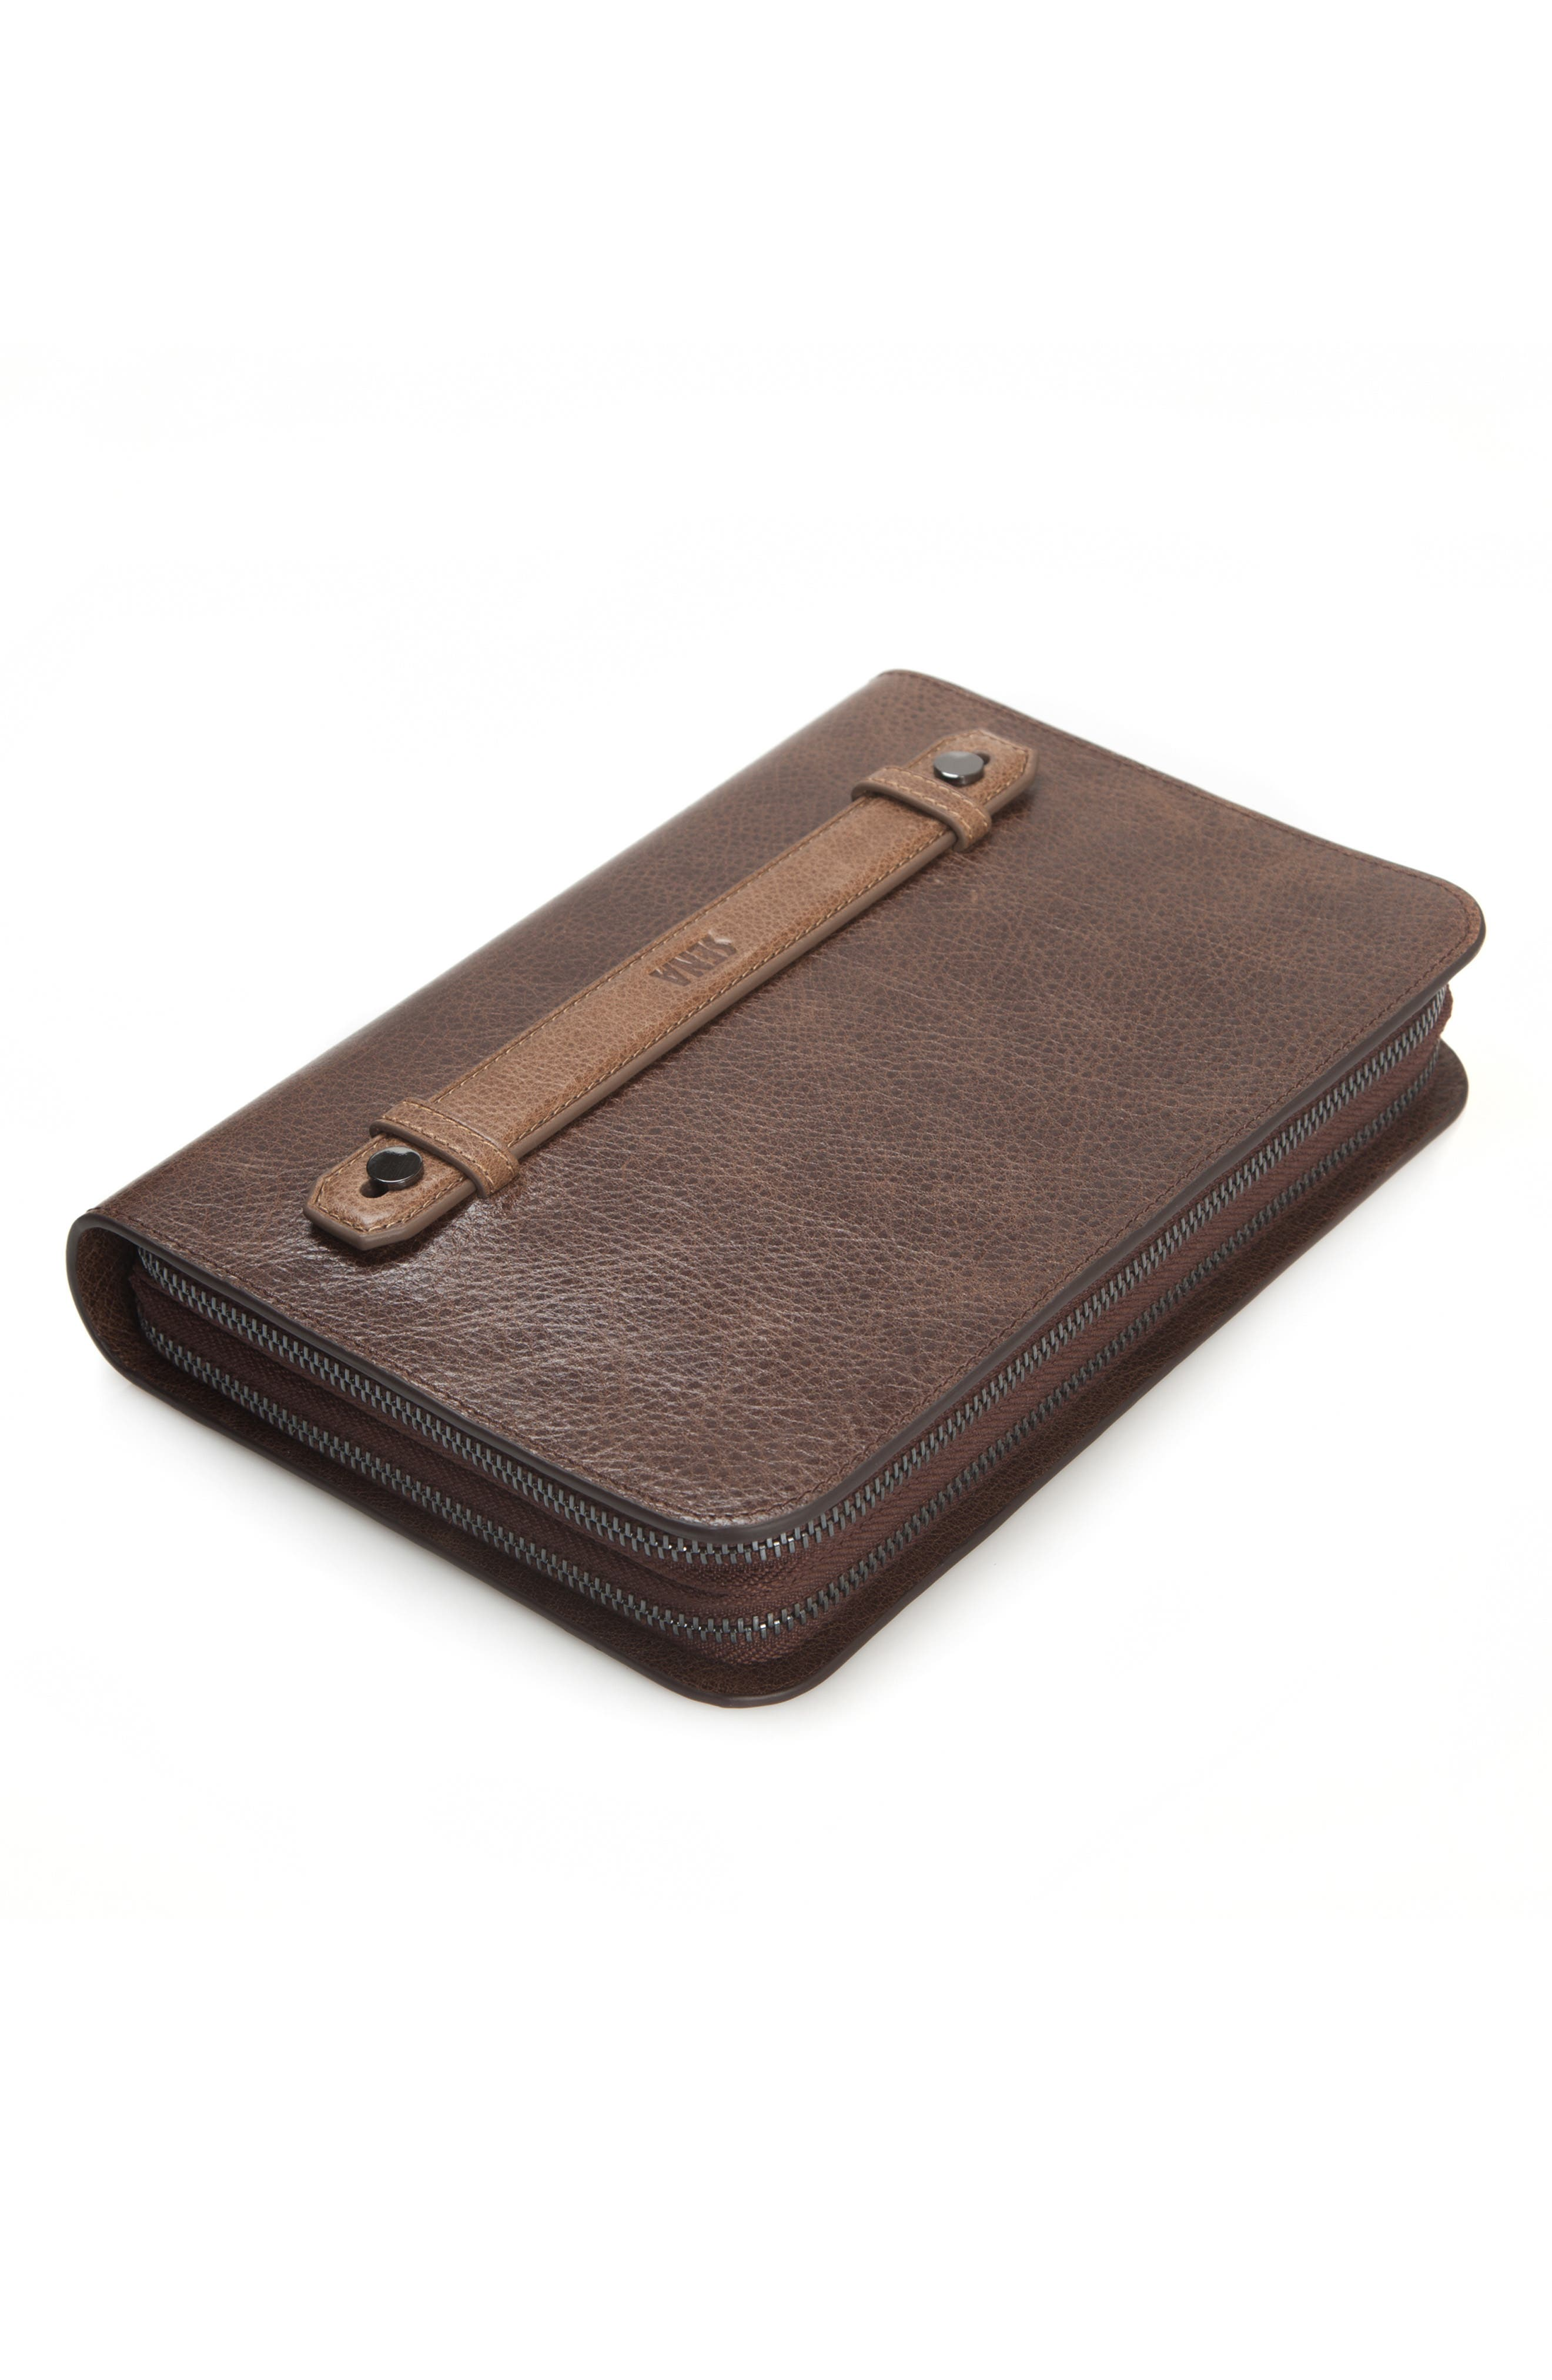 'Heritage' iPad mini All-in-One Case,                             Alternate thumbnail 5, color,                             213